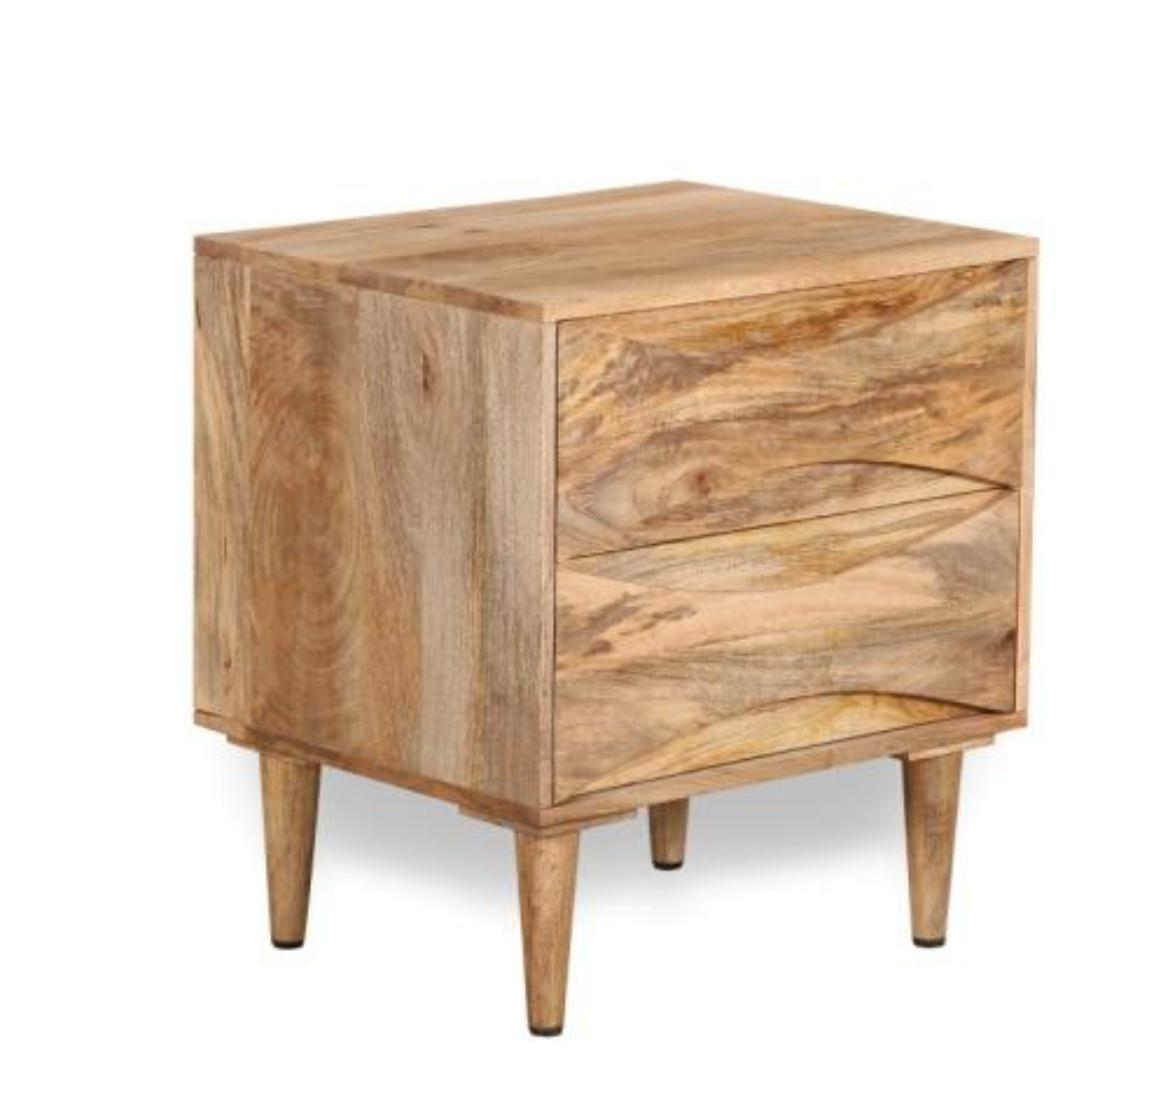 Industrial Side Tables Living Room, Nightstand Bedroom with Drawer and Rustic Shelf, Wood aEnd Table, Rustic Home Decor